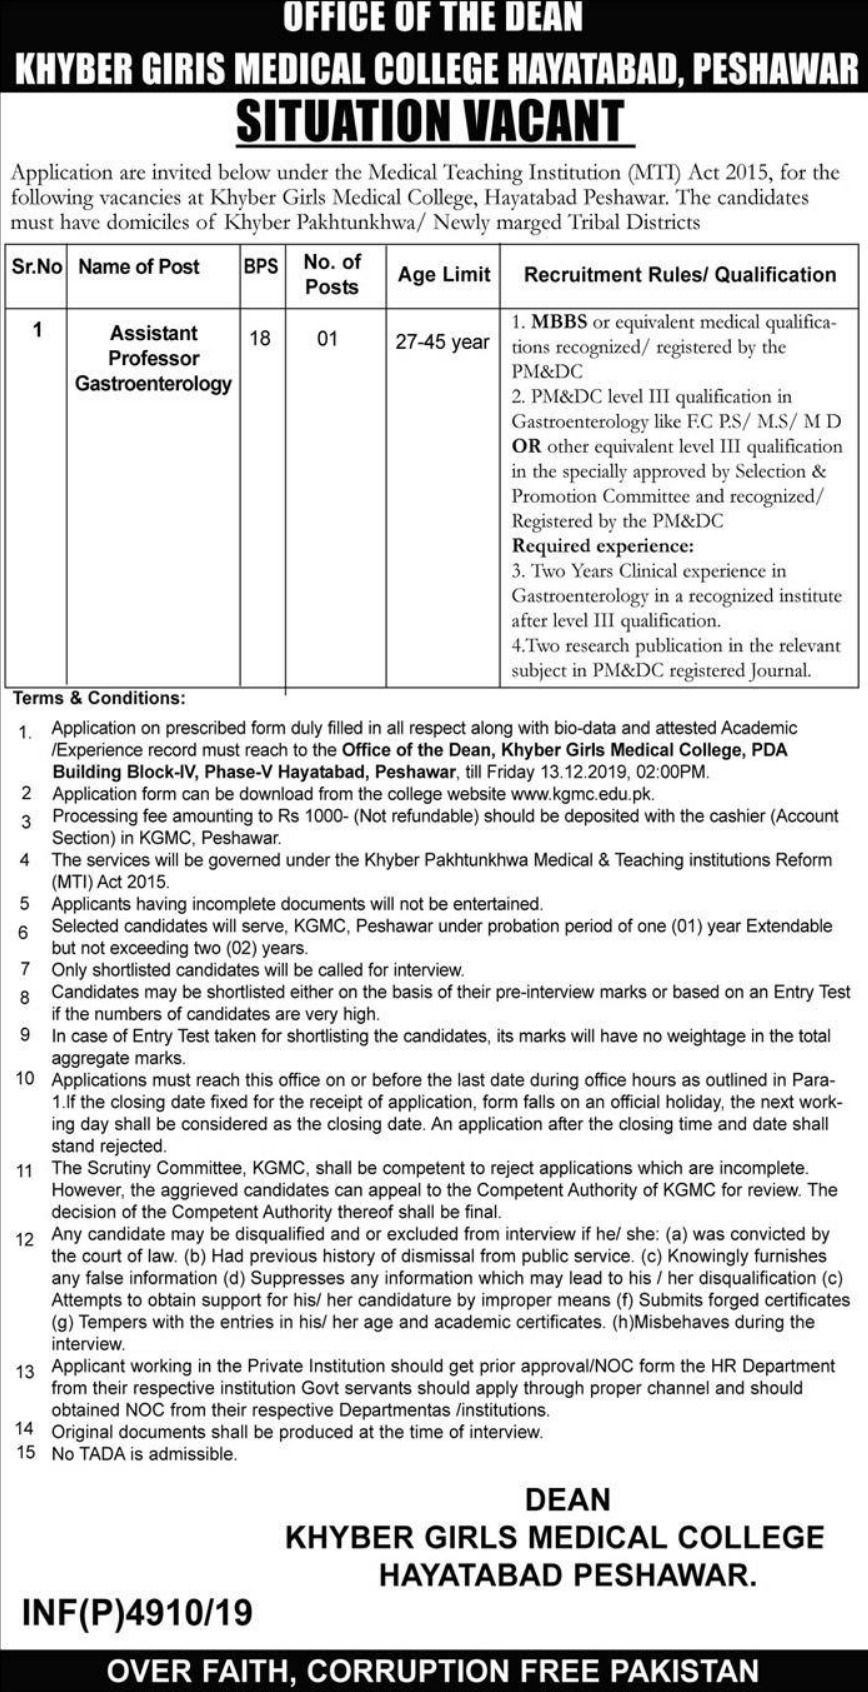 KGMC Hayatabad Peshawar Jobs 2019 Khyber Girls Medical College